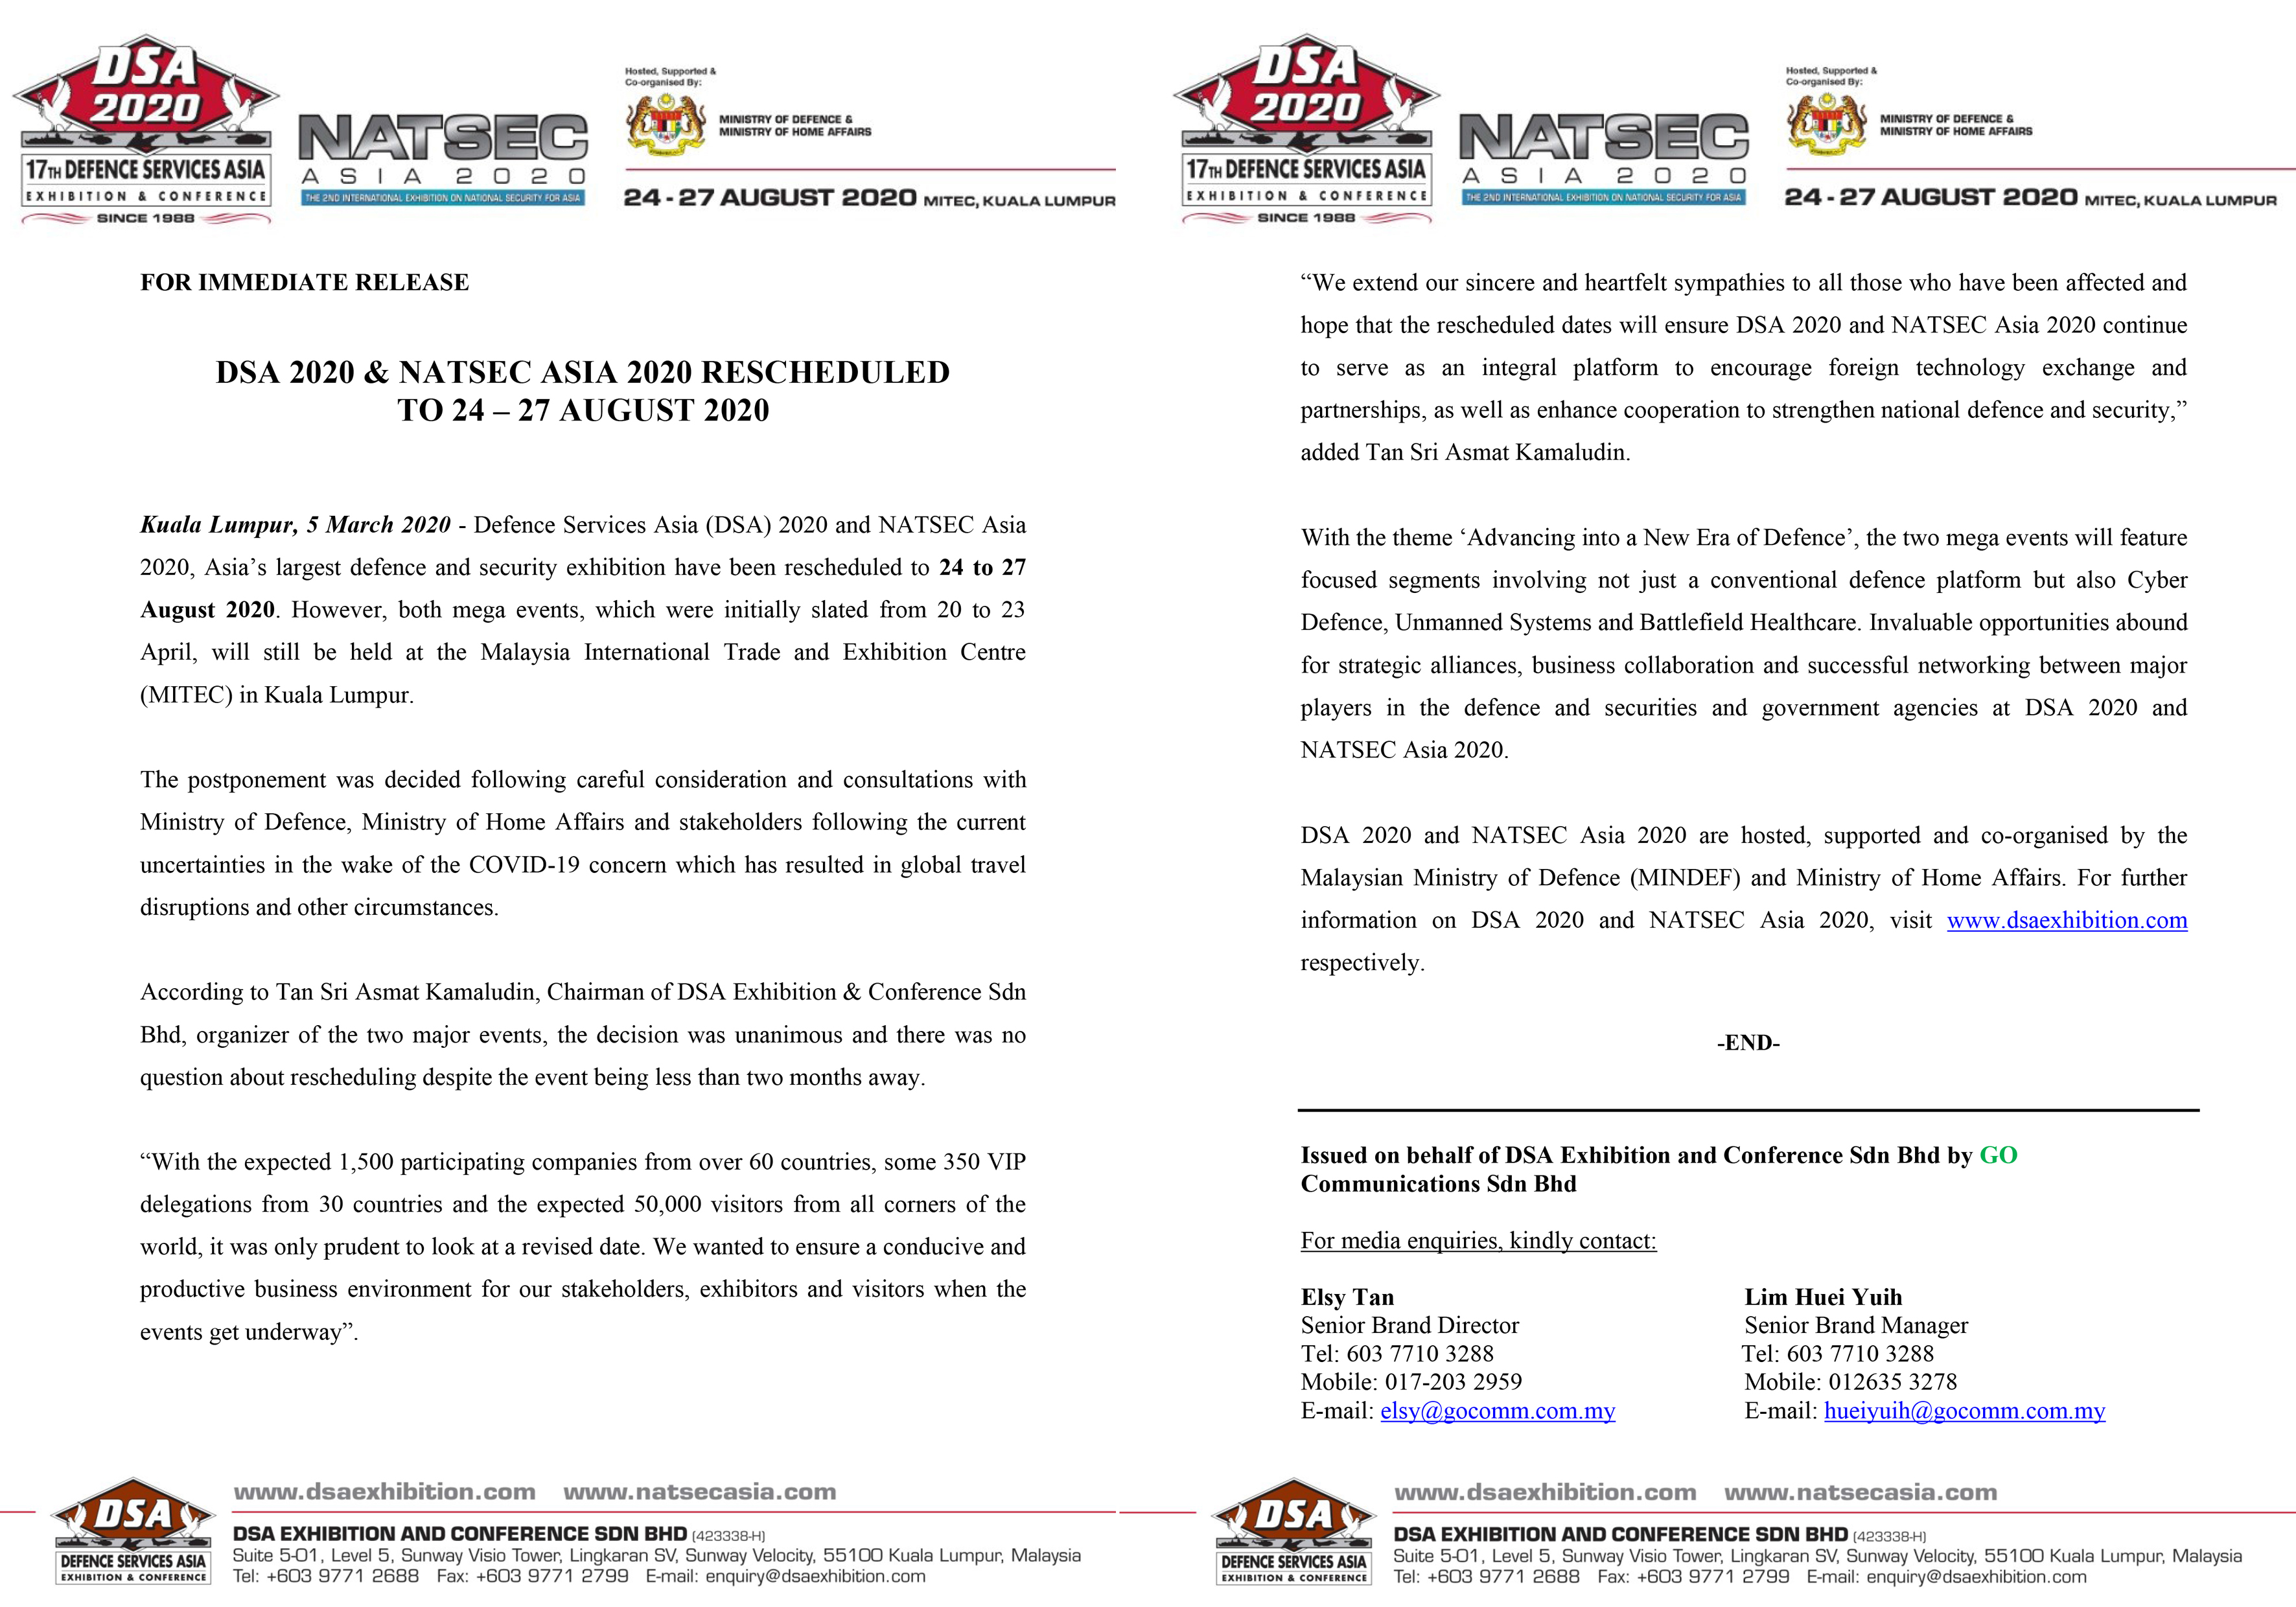 announcement-of-new-date-press-release-v5-1합.jpg